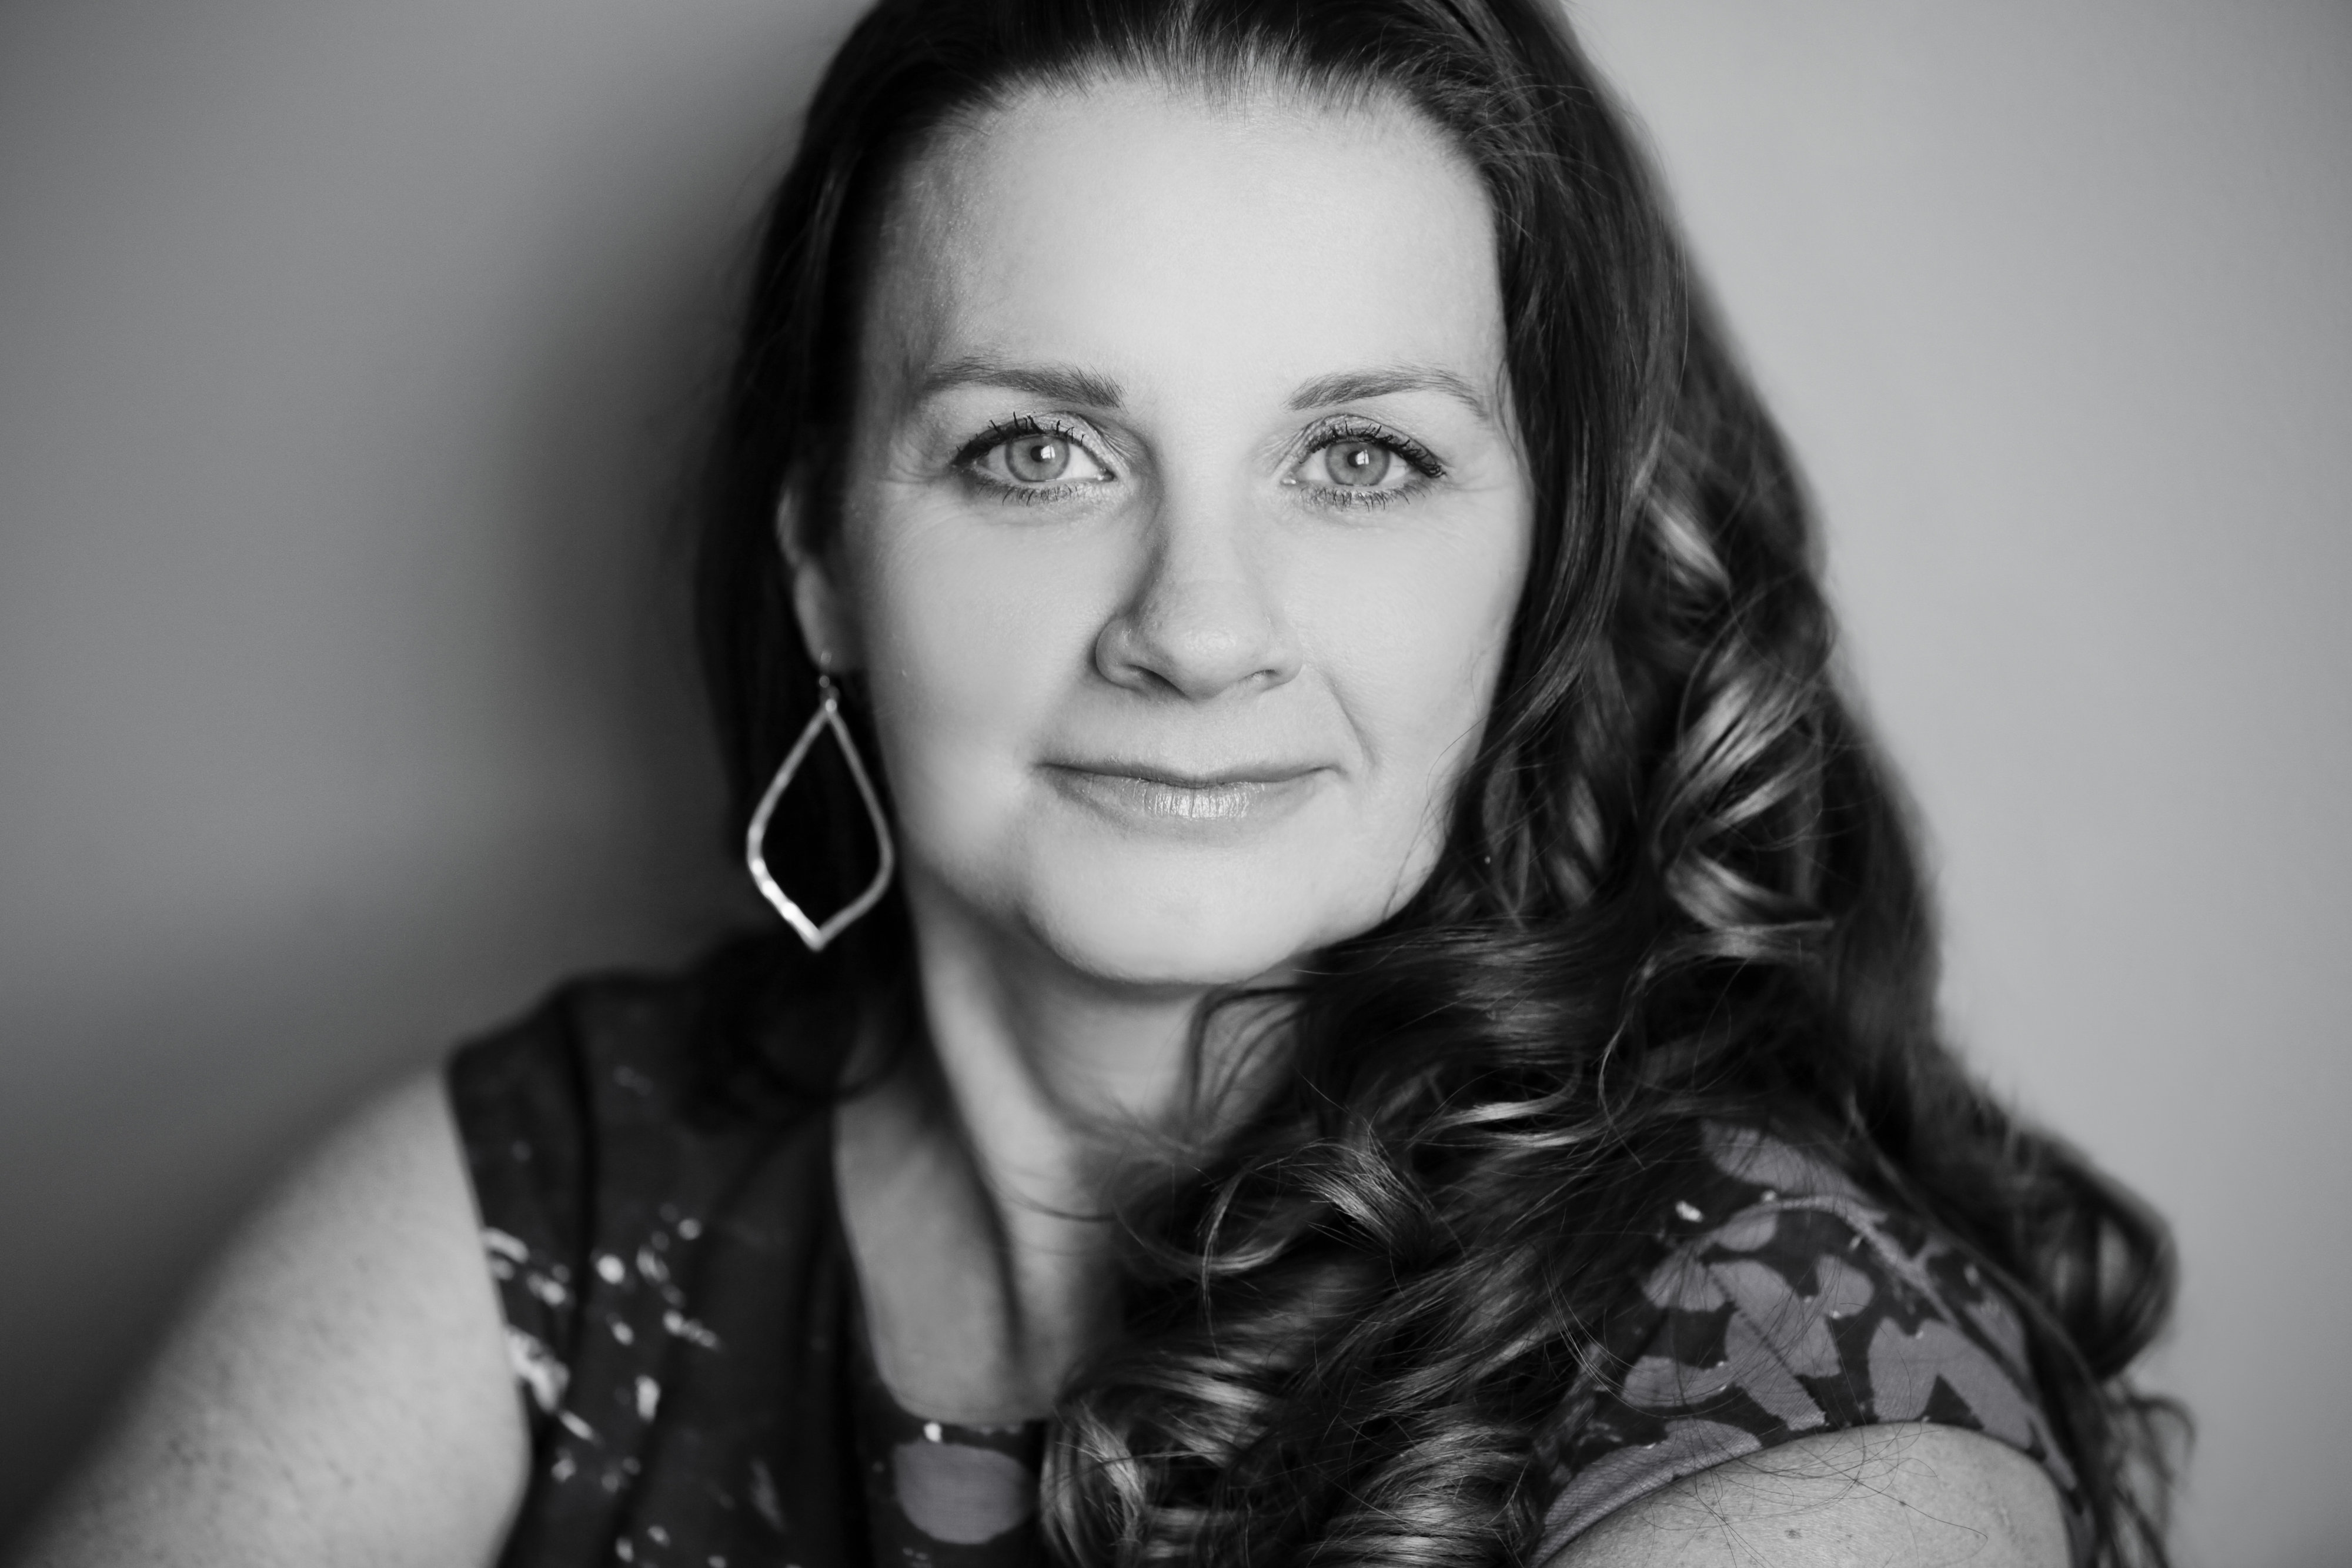 About Dawn Marie Bornheimer, author, mentor, and speak who engages leadership and people to find their voice